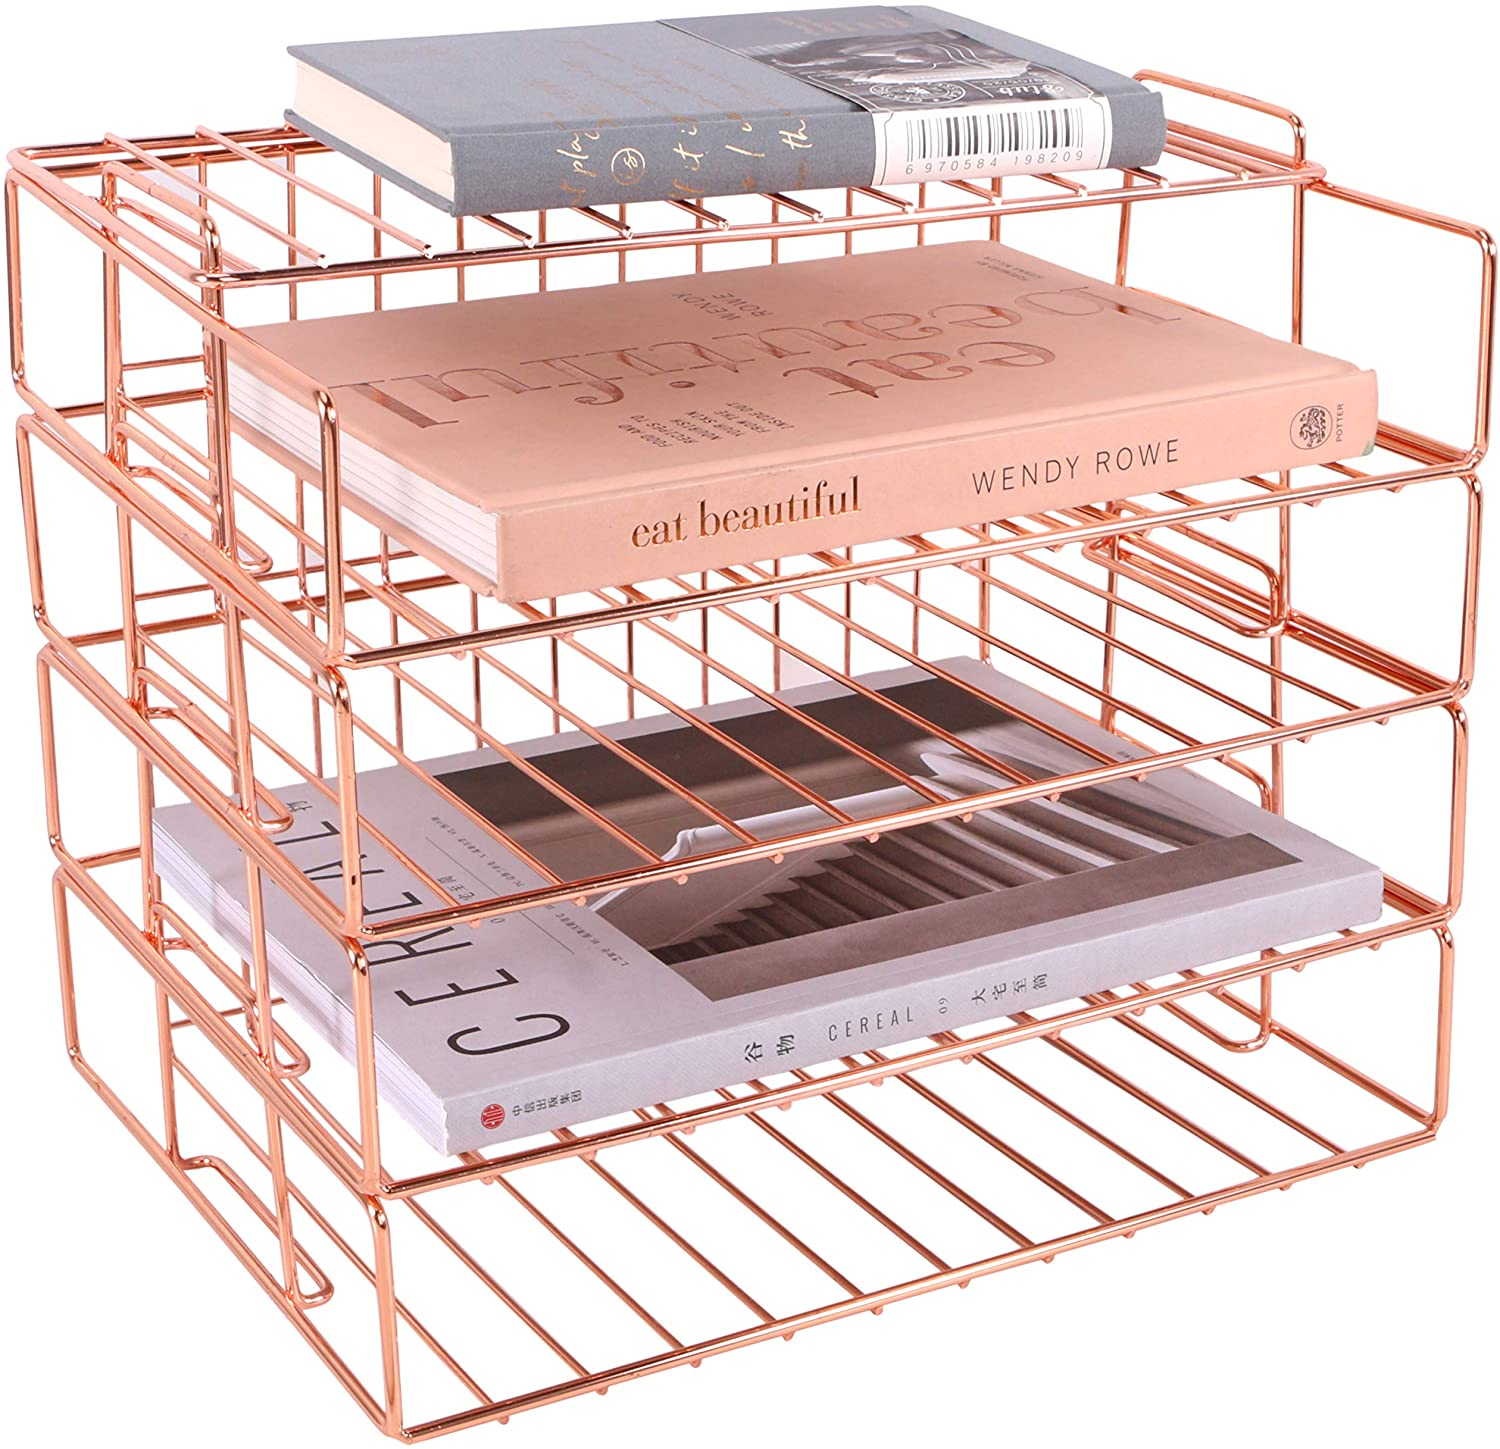 Hosaken Paper Tray, 4 Tier Stackable Letter Tray, Decorative Desk File Organizer Rack for Office Supplies and Accessories, Letter Size, Rose Gold